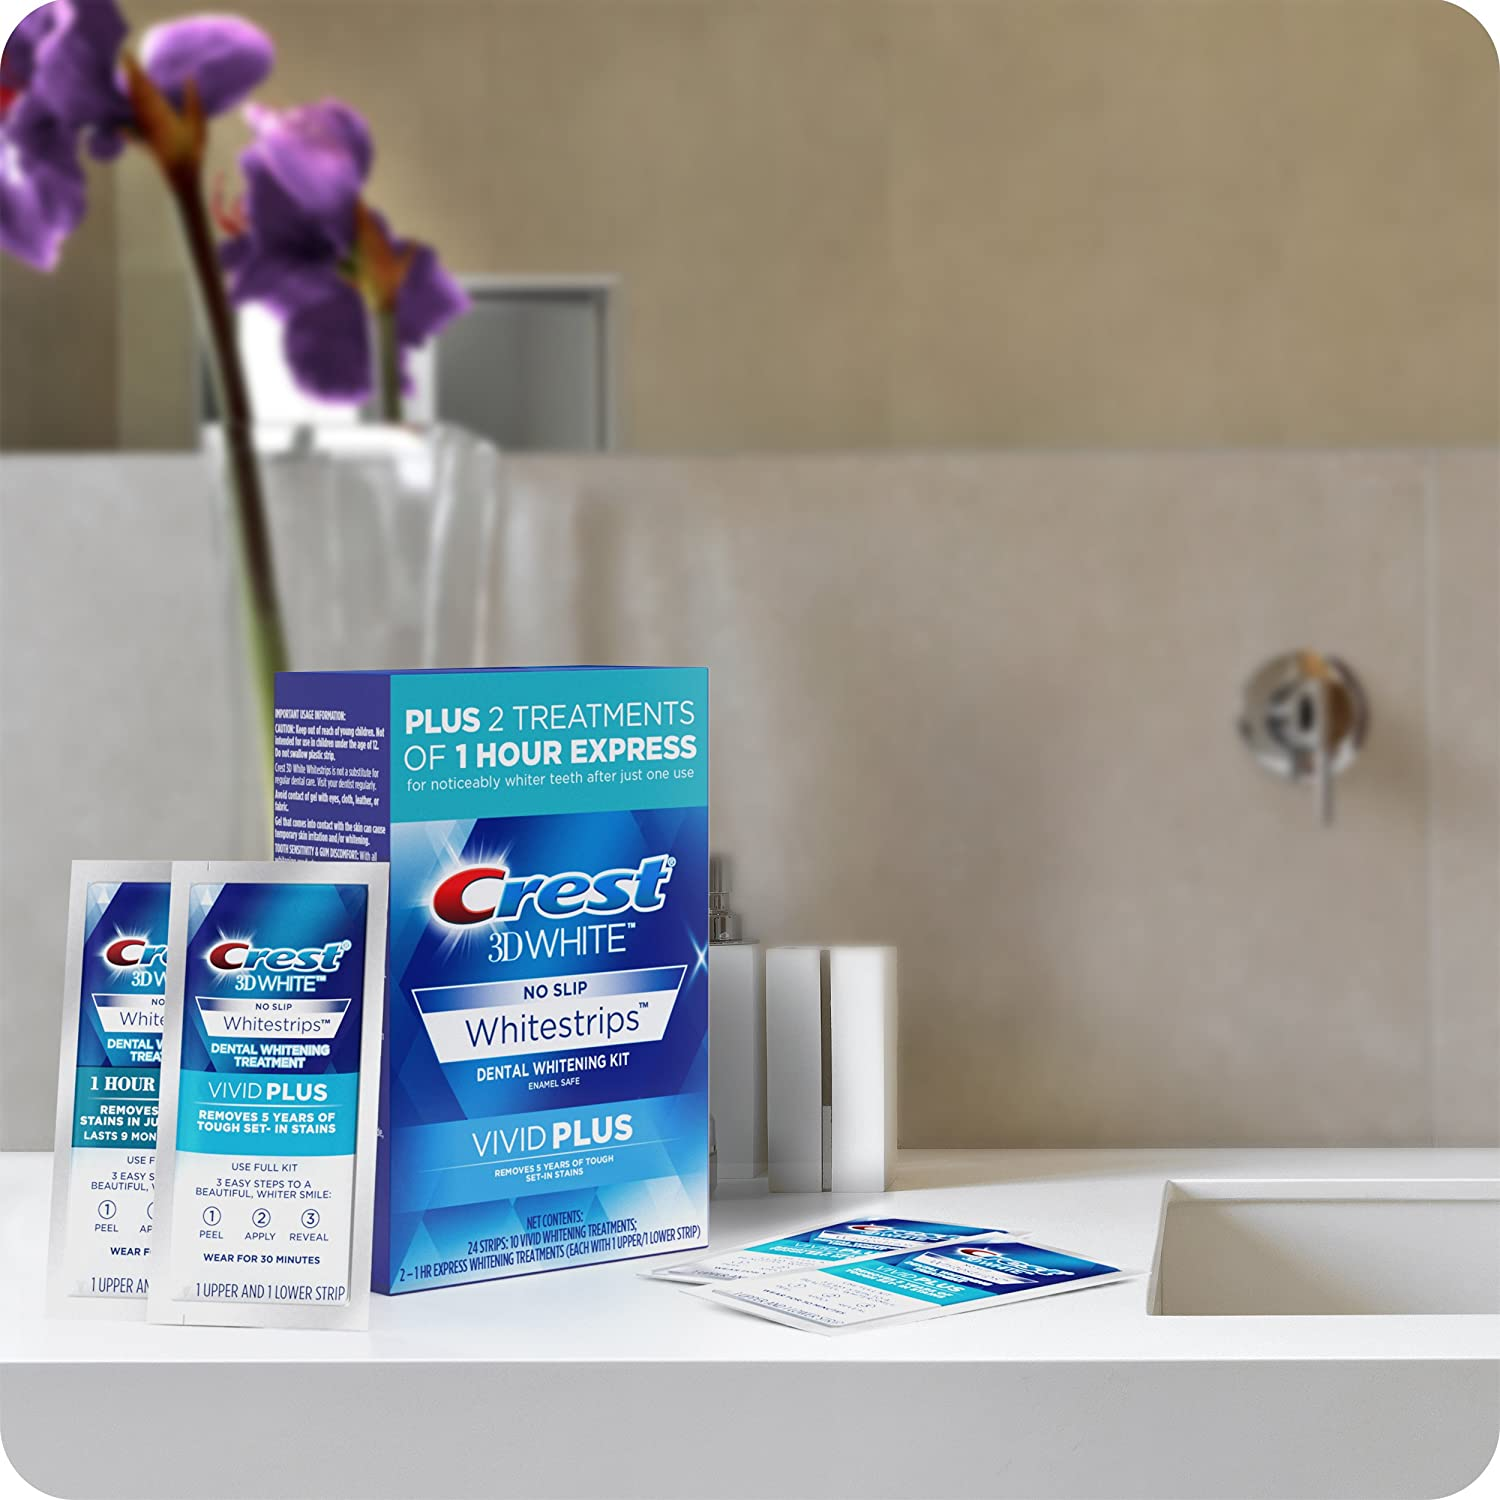 Crest 3D White Professional Effects White Strips -Our Review